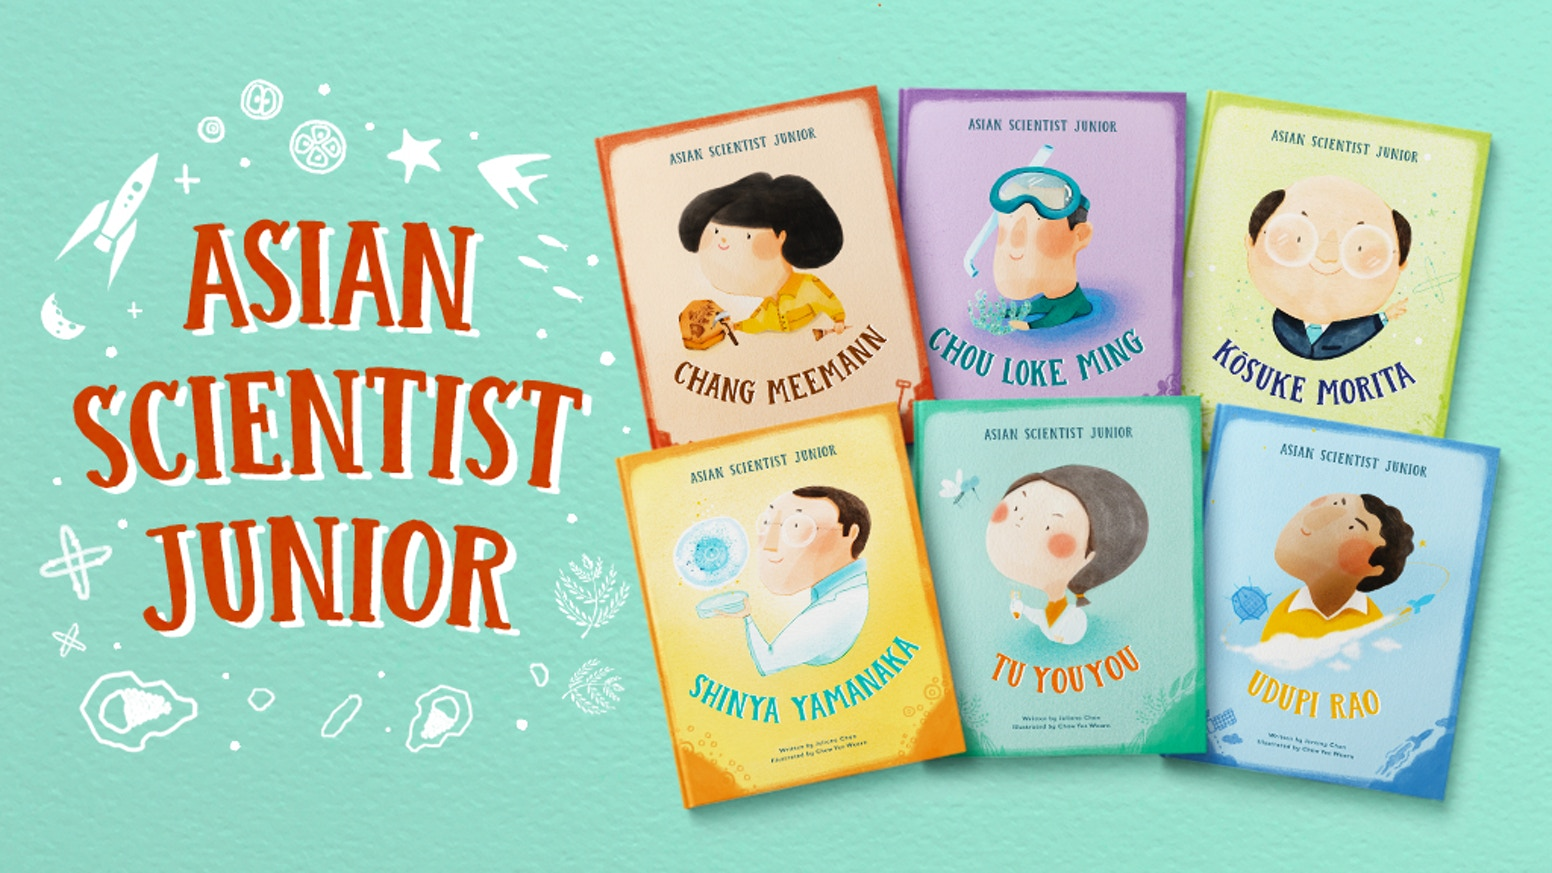 Asian Scientist Junior, a six-part children's book series by